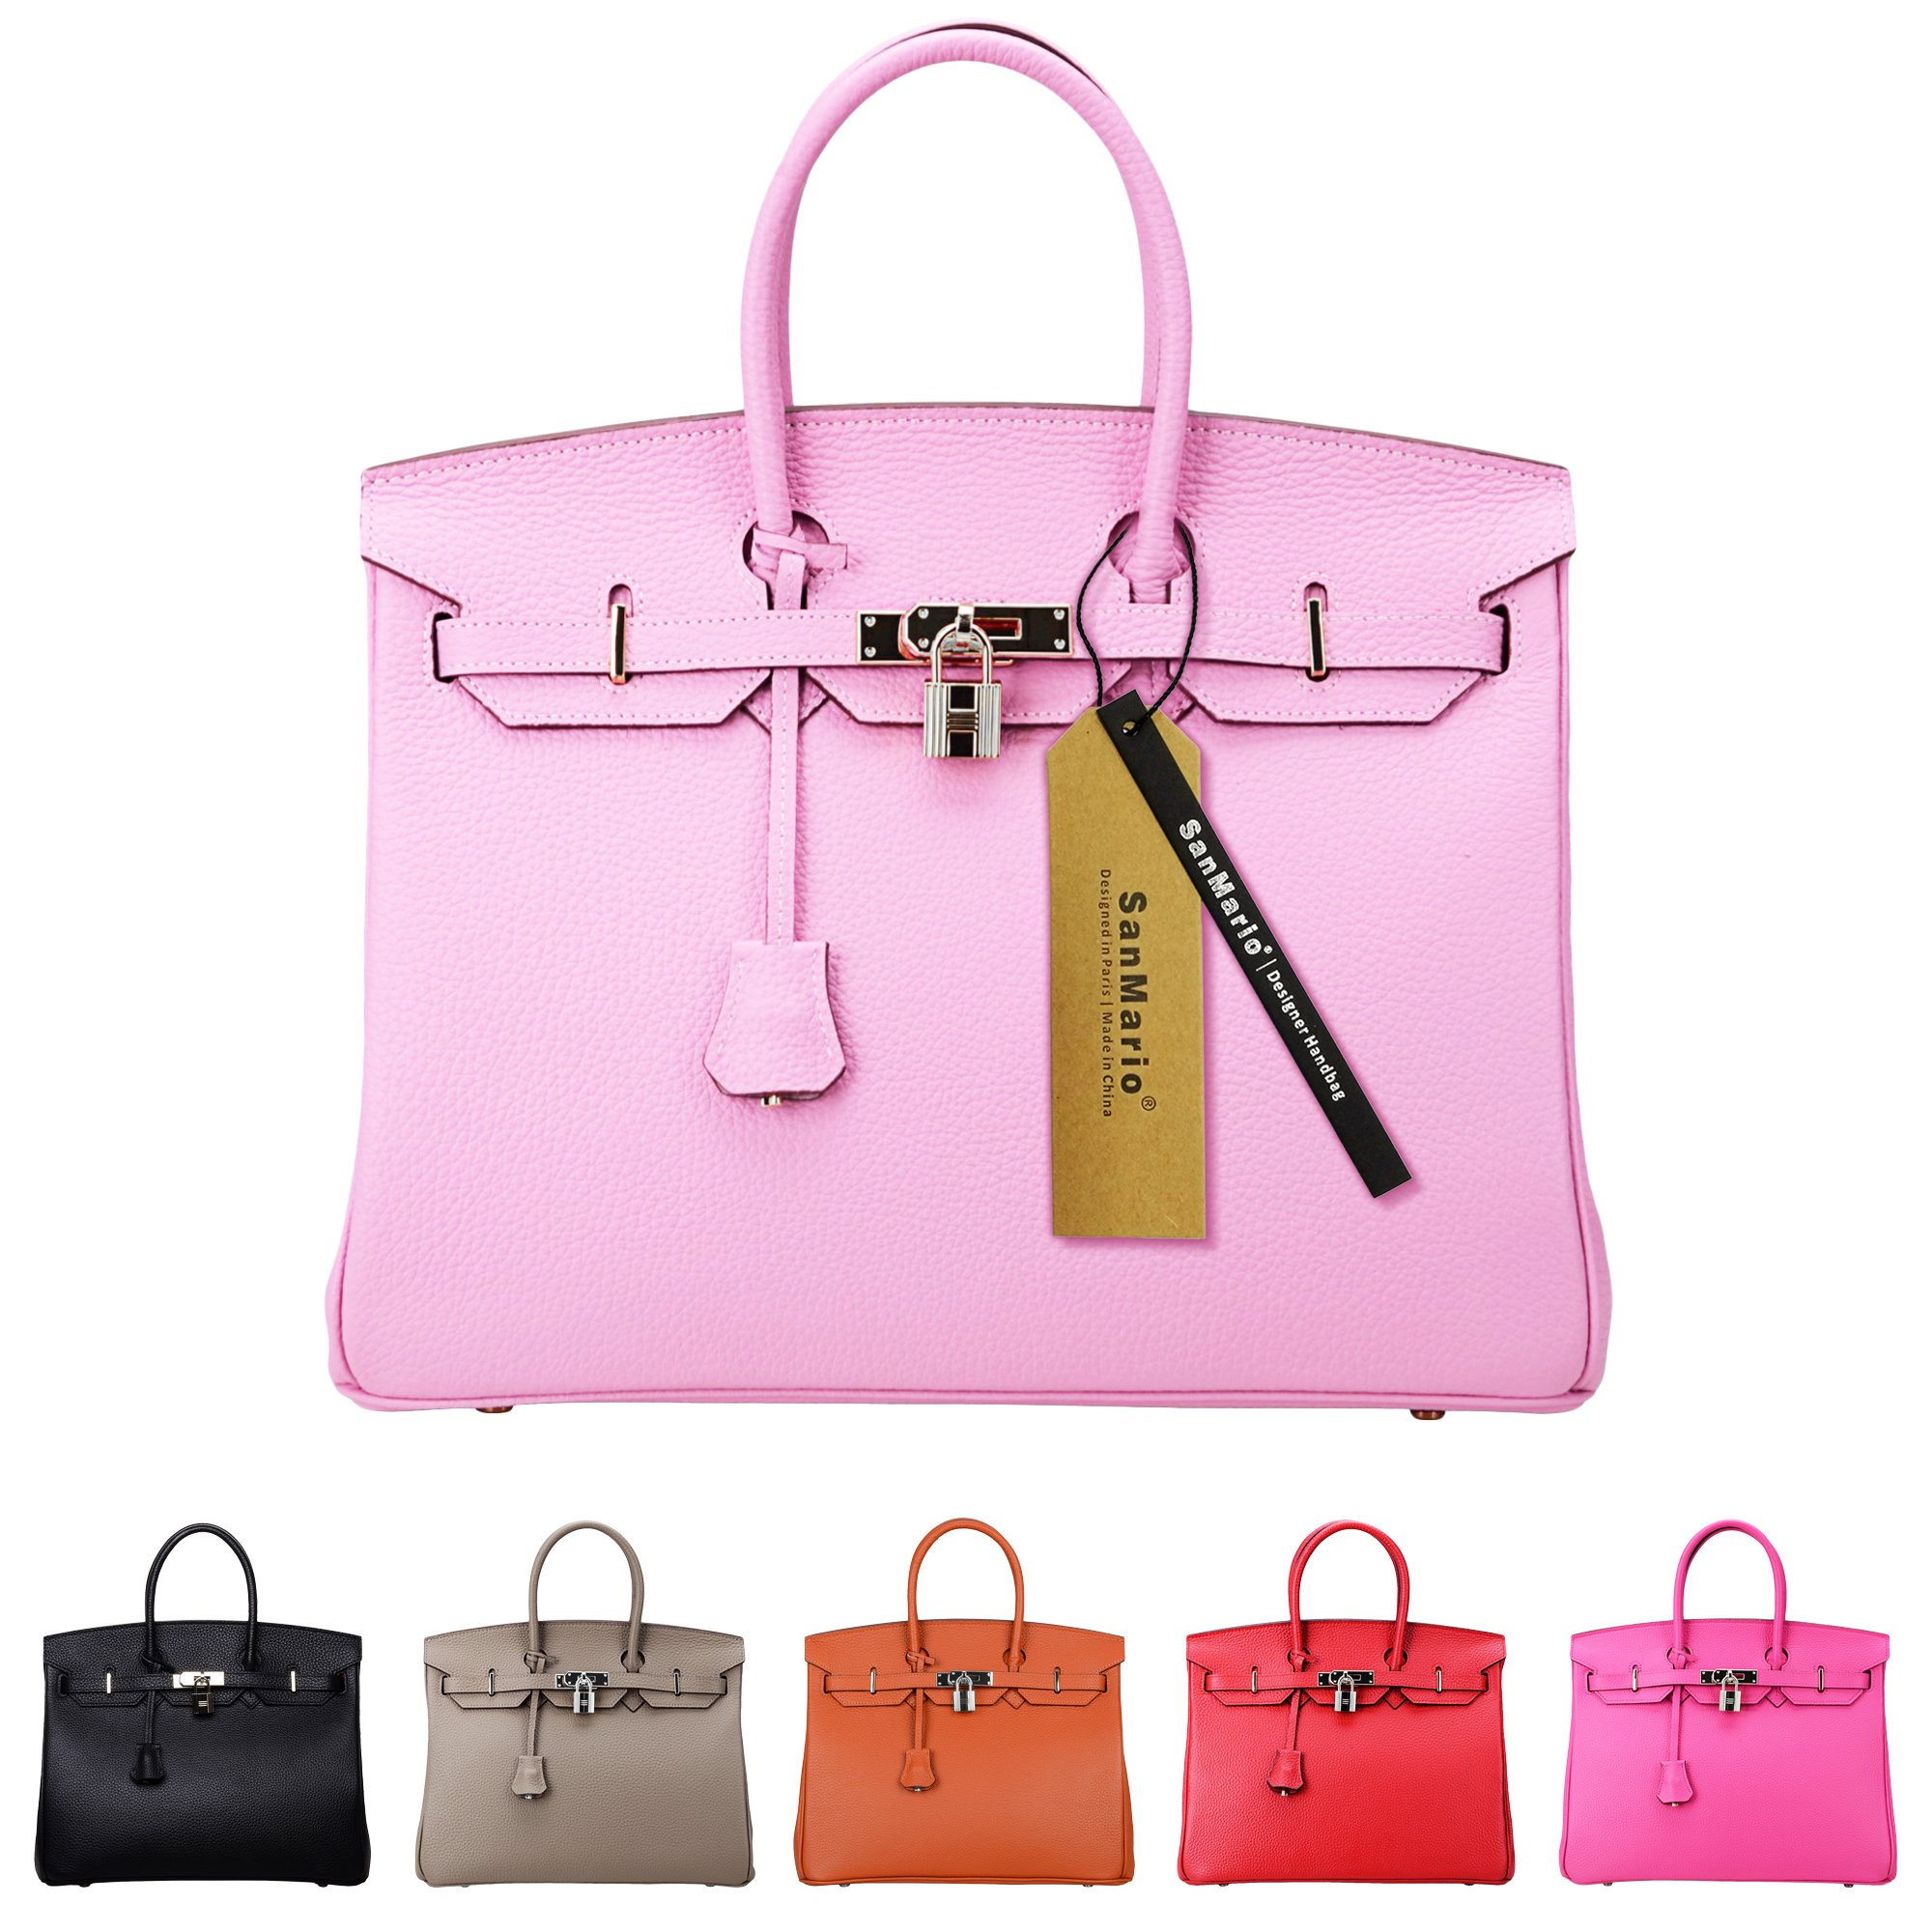 SanMario Designer Handbag Top Handle Padlock Women's Leather Bag with Silver Hardware Pink 35cm/14''